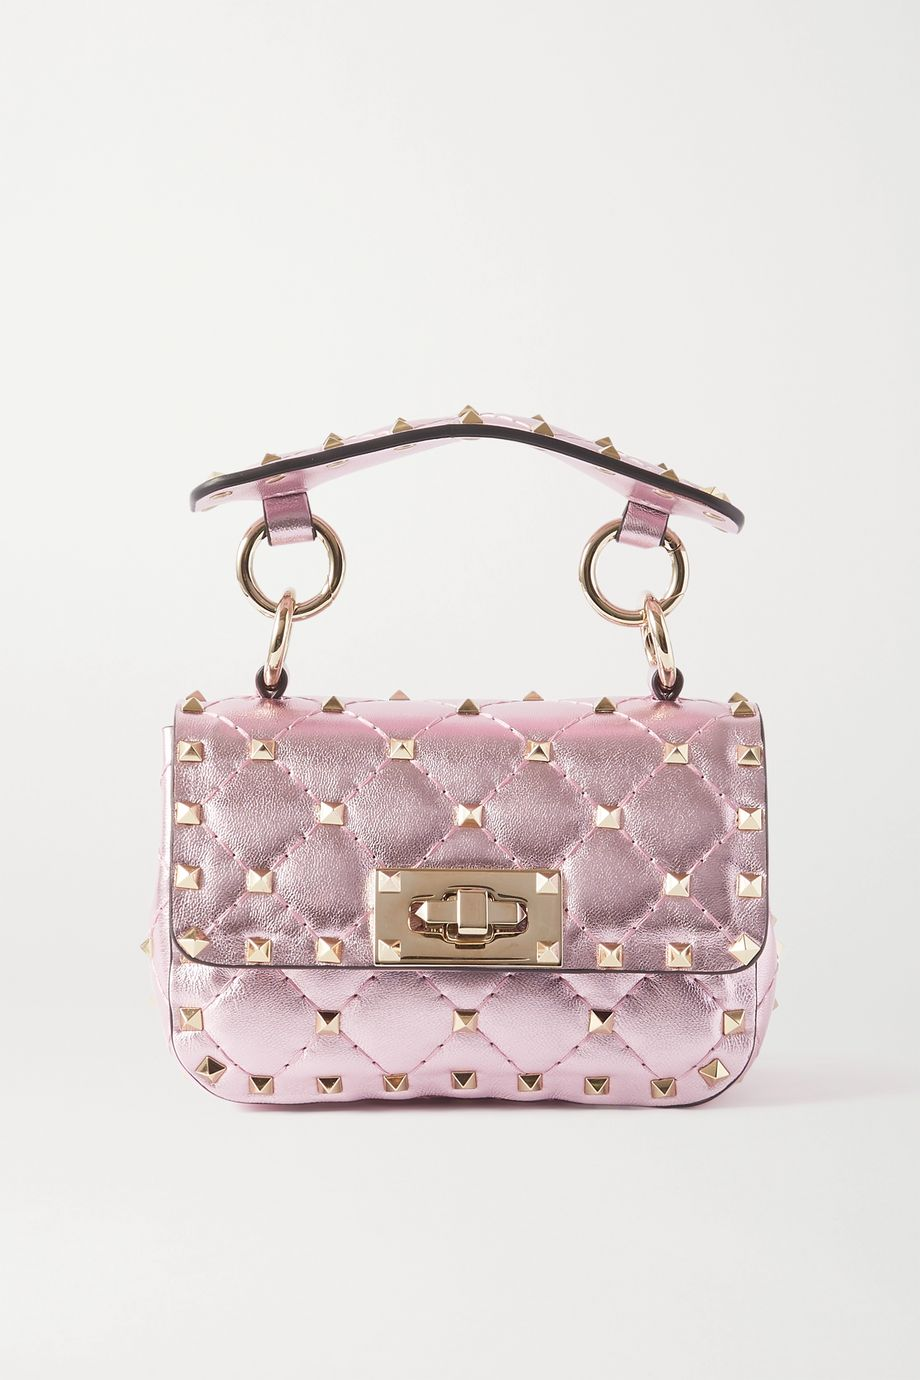 Valentino Valentino Garavani Rockstud Spike micro quilted metallic leather shoulder bag